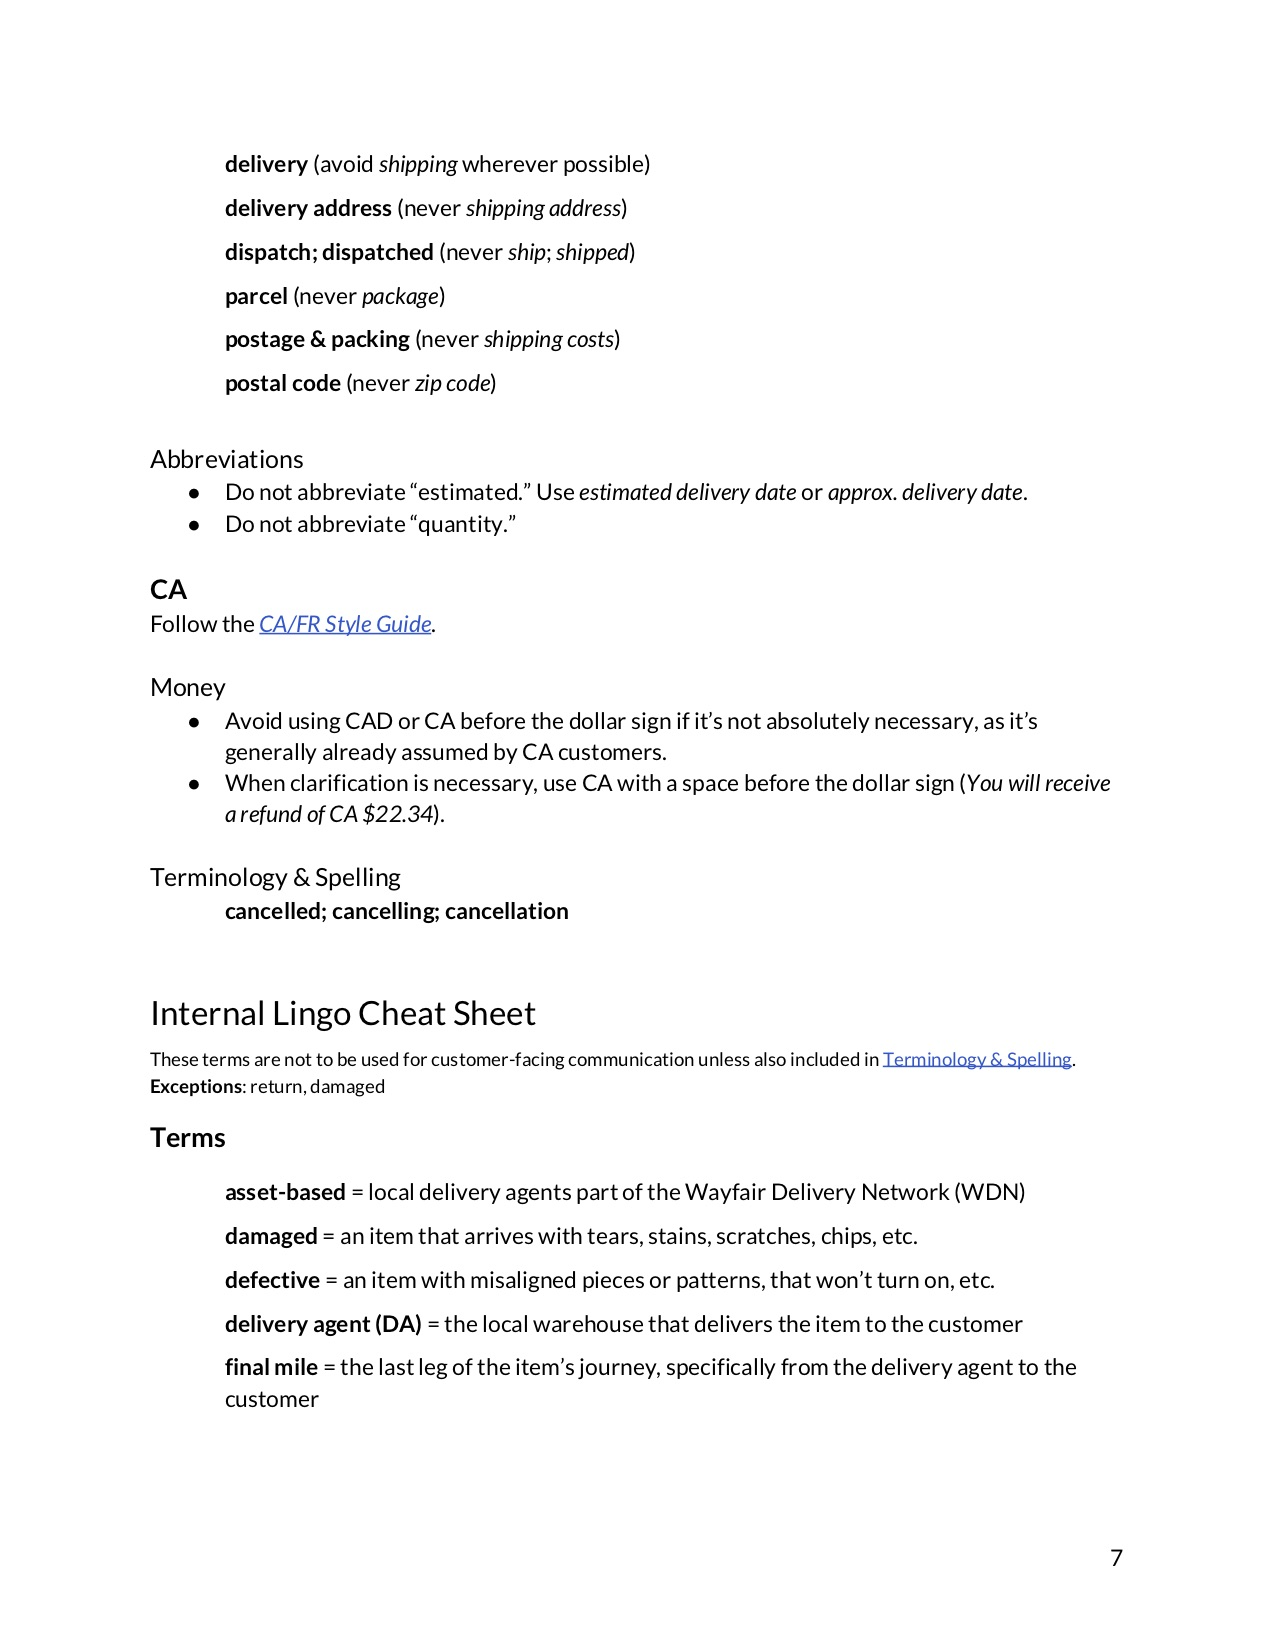 seventh page of a content guide document showing the beginning of a list of internal terms